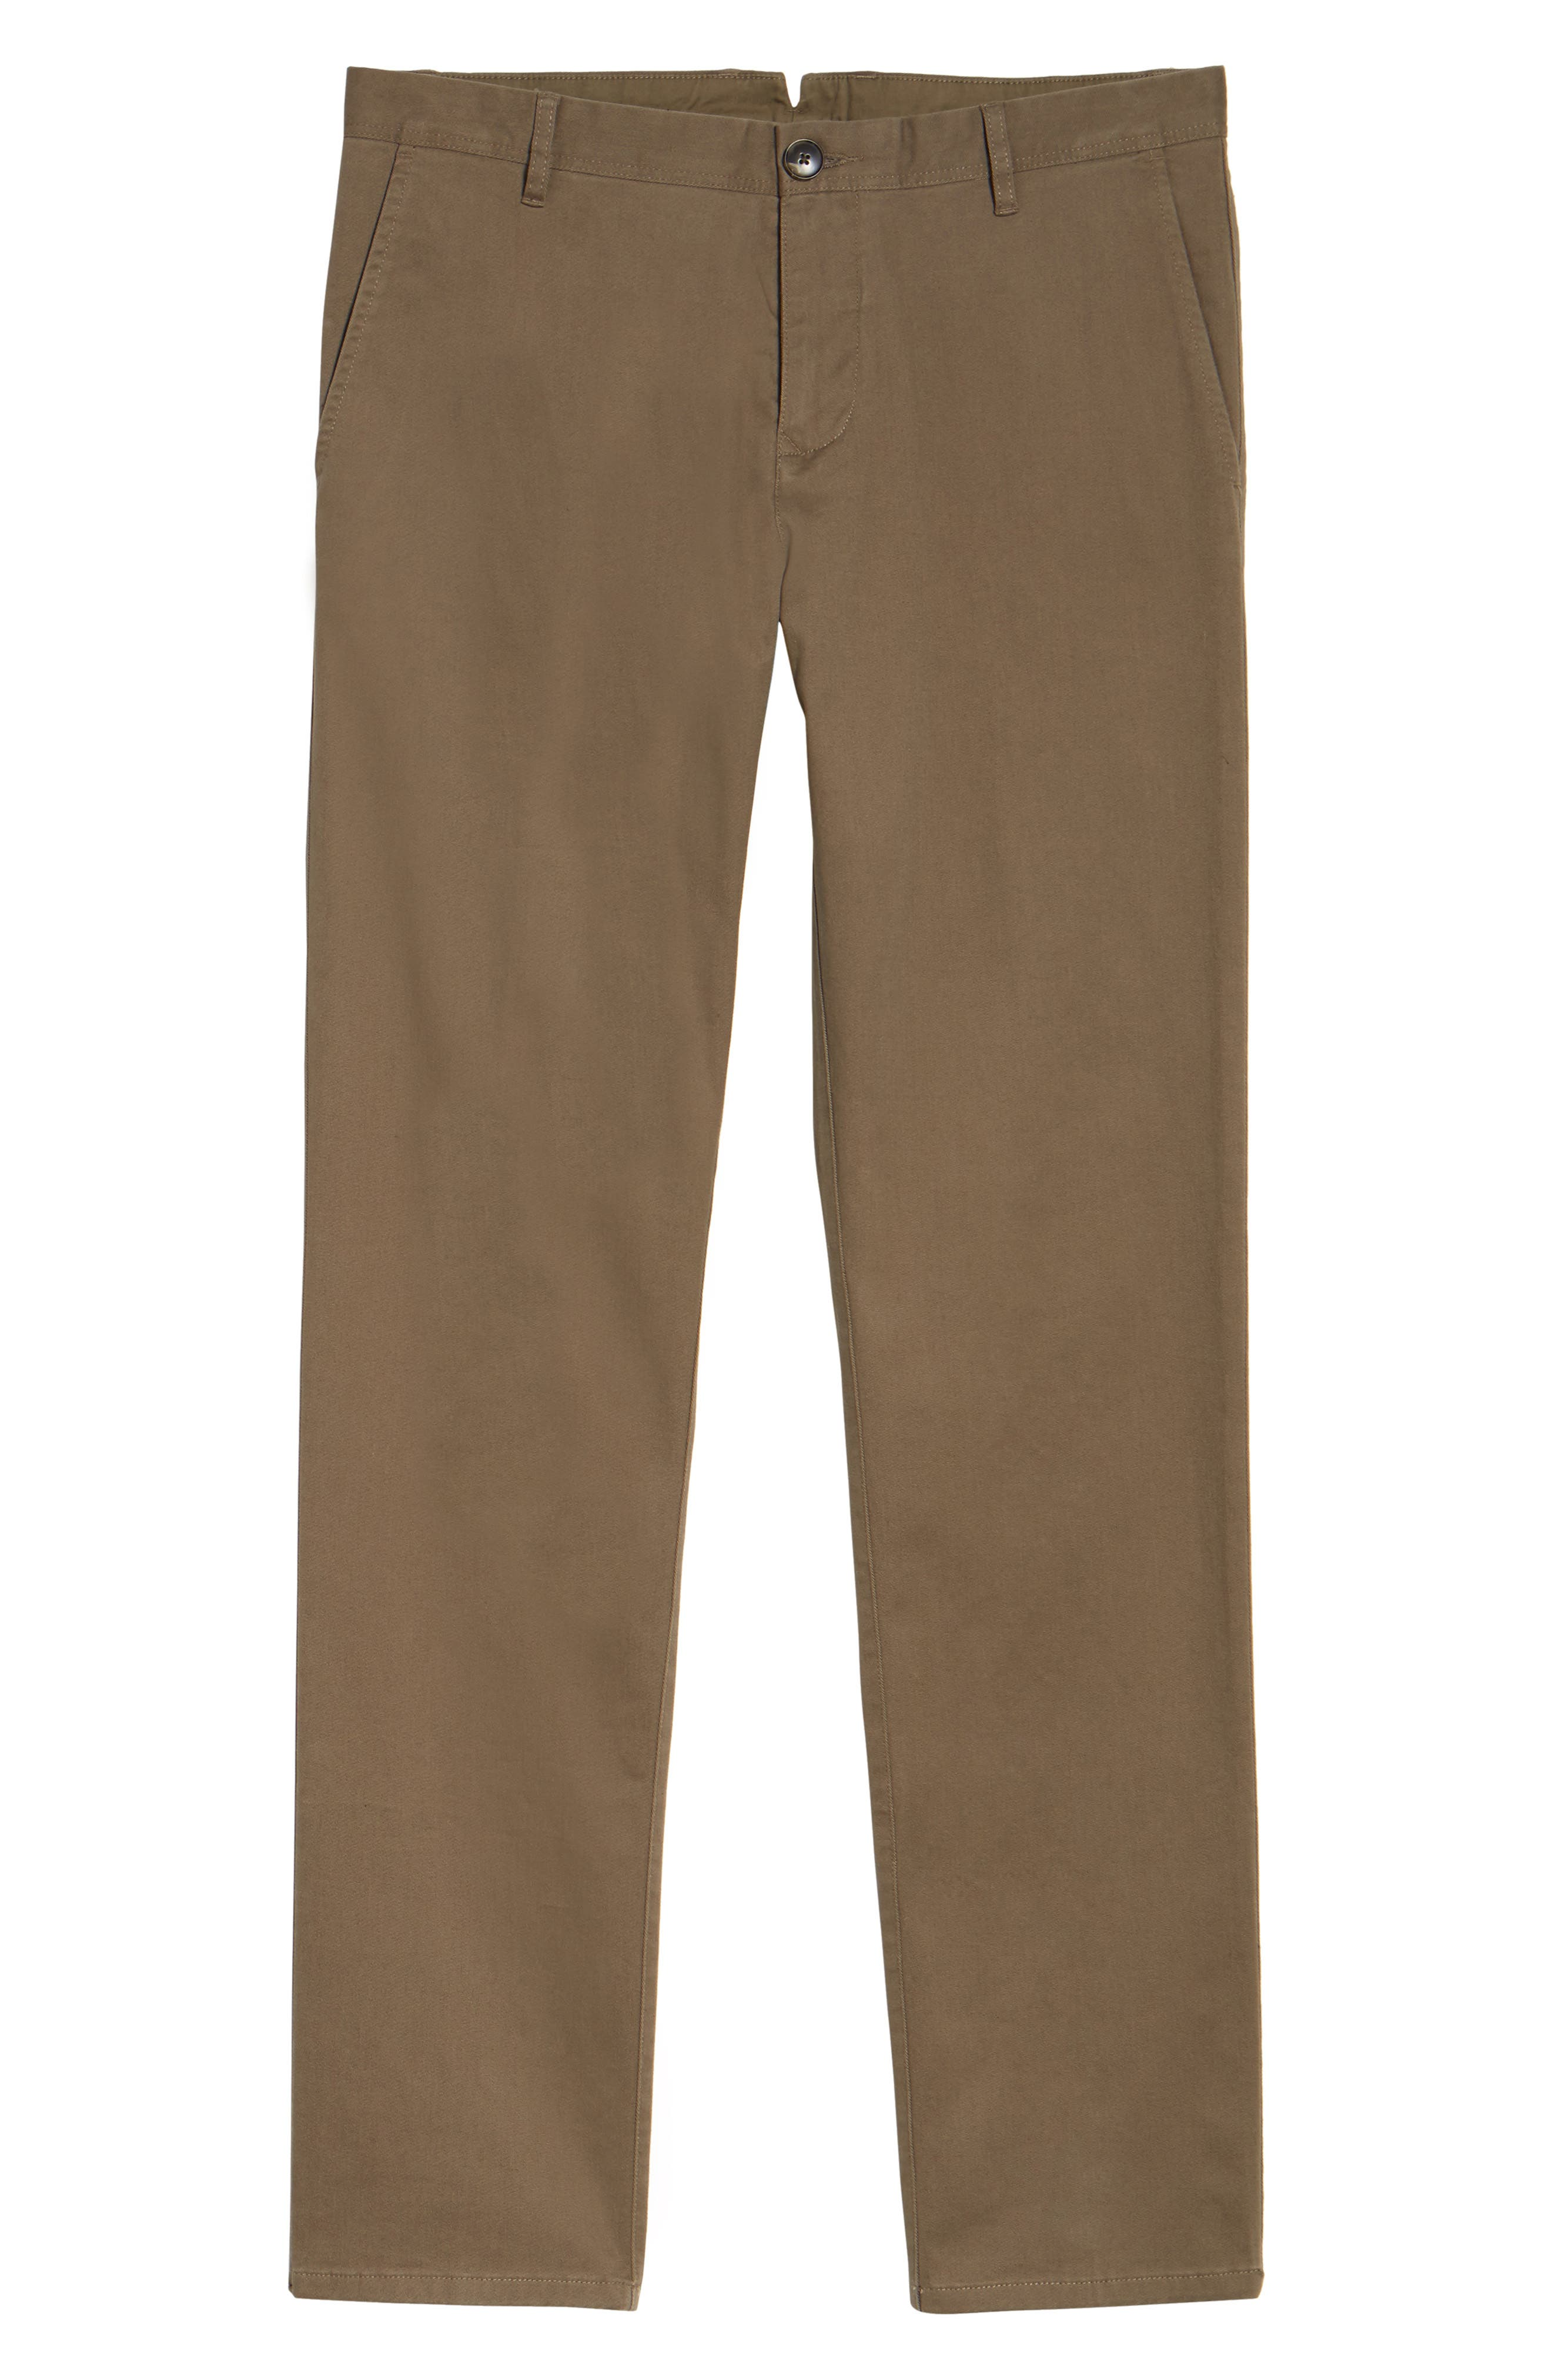 Stanely Brook Custom Fit Chinos,                             Alternate thumbnail 6, color,                             TAUPE